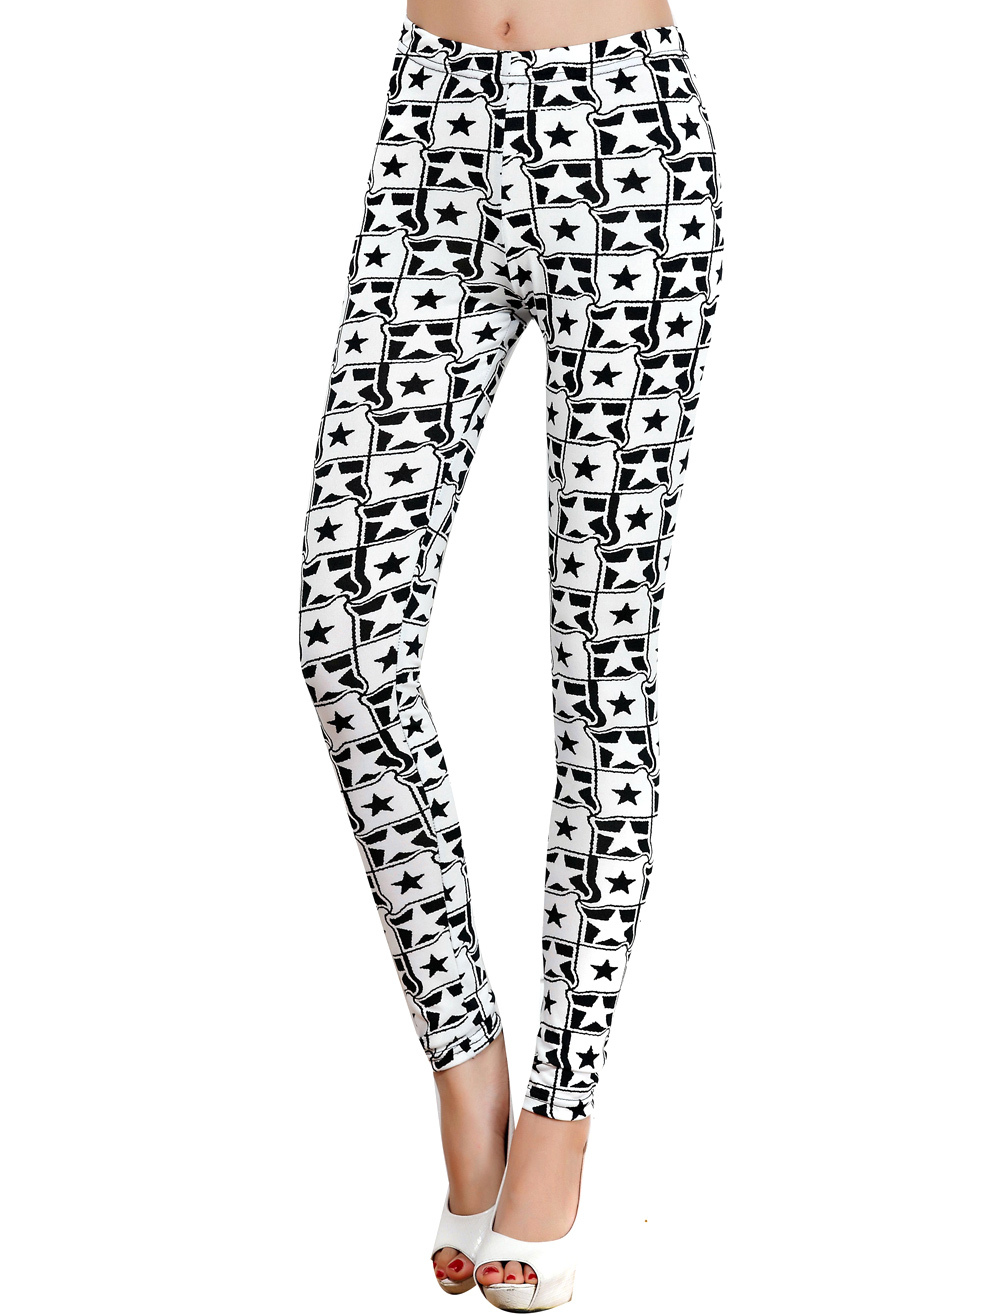 Polyester Stars Print Plaid Slim Women's Leggings